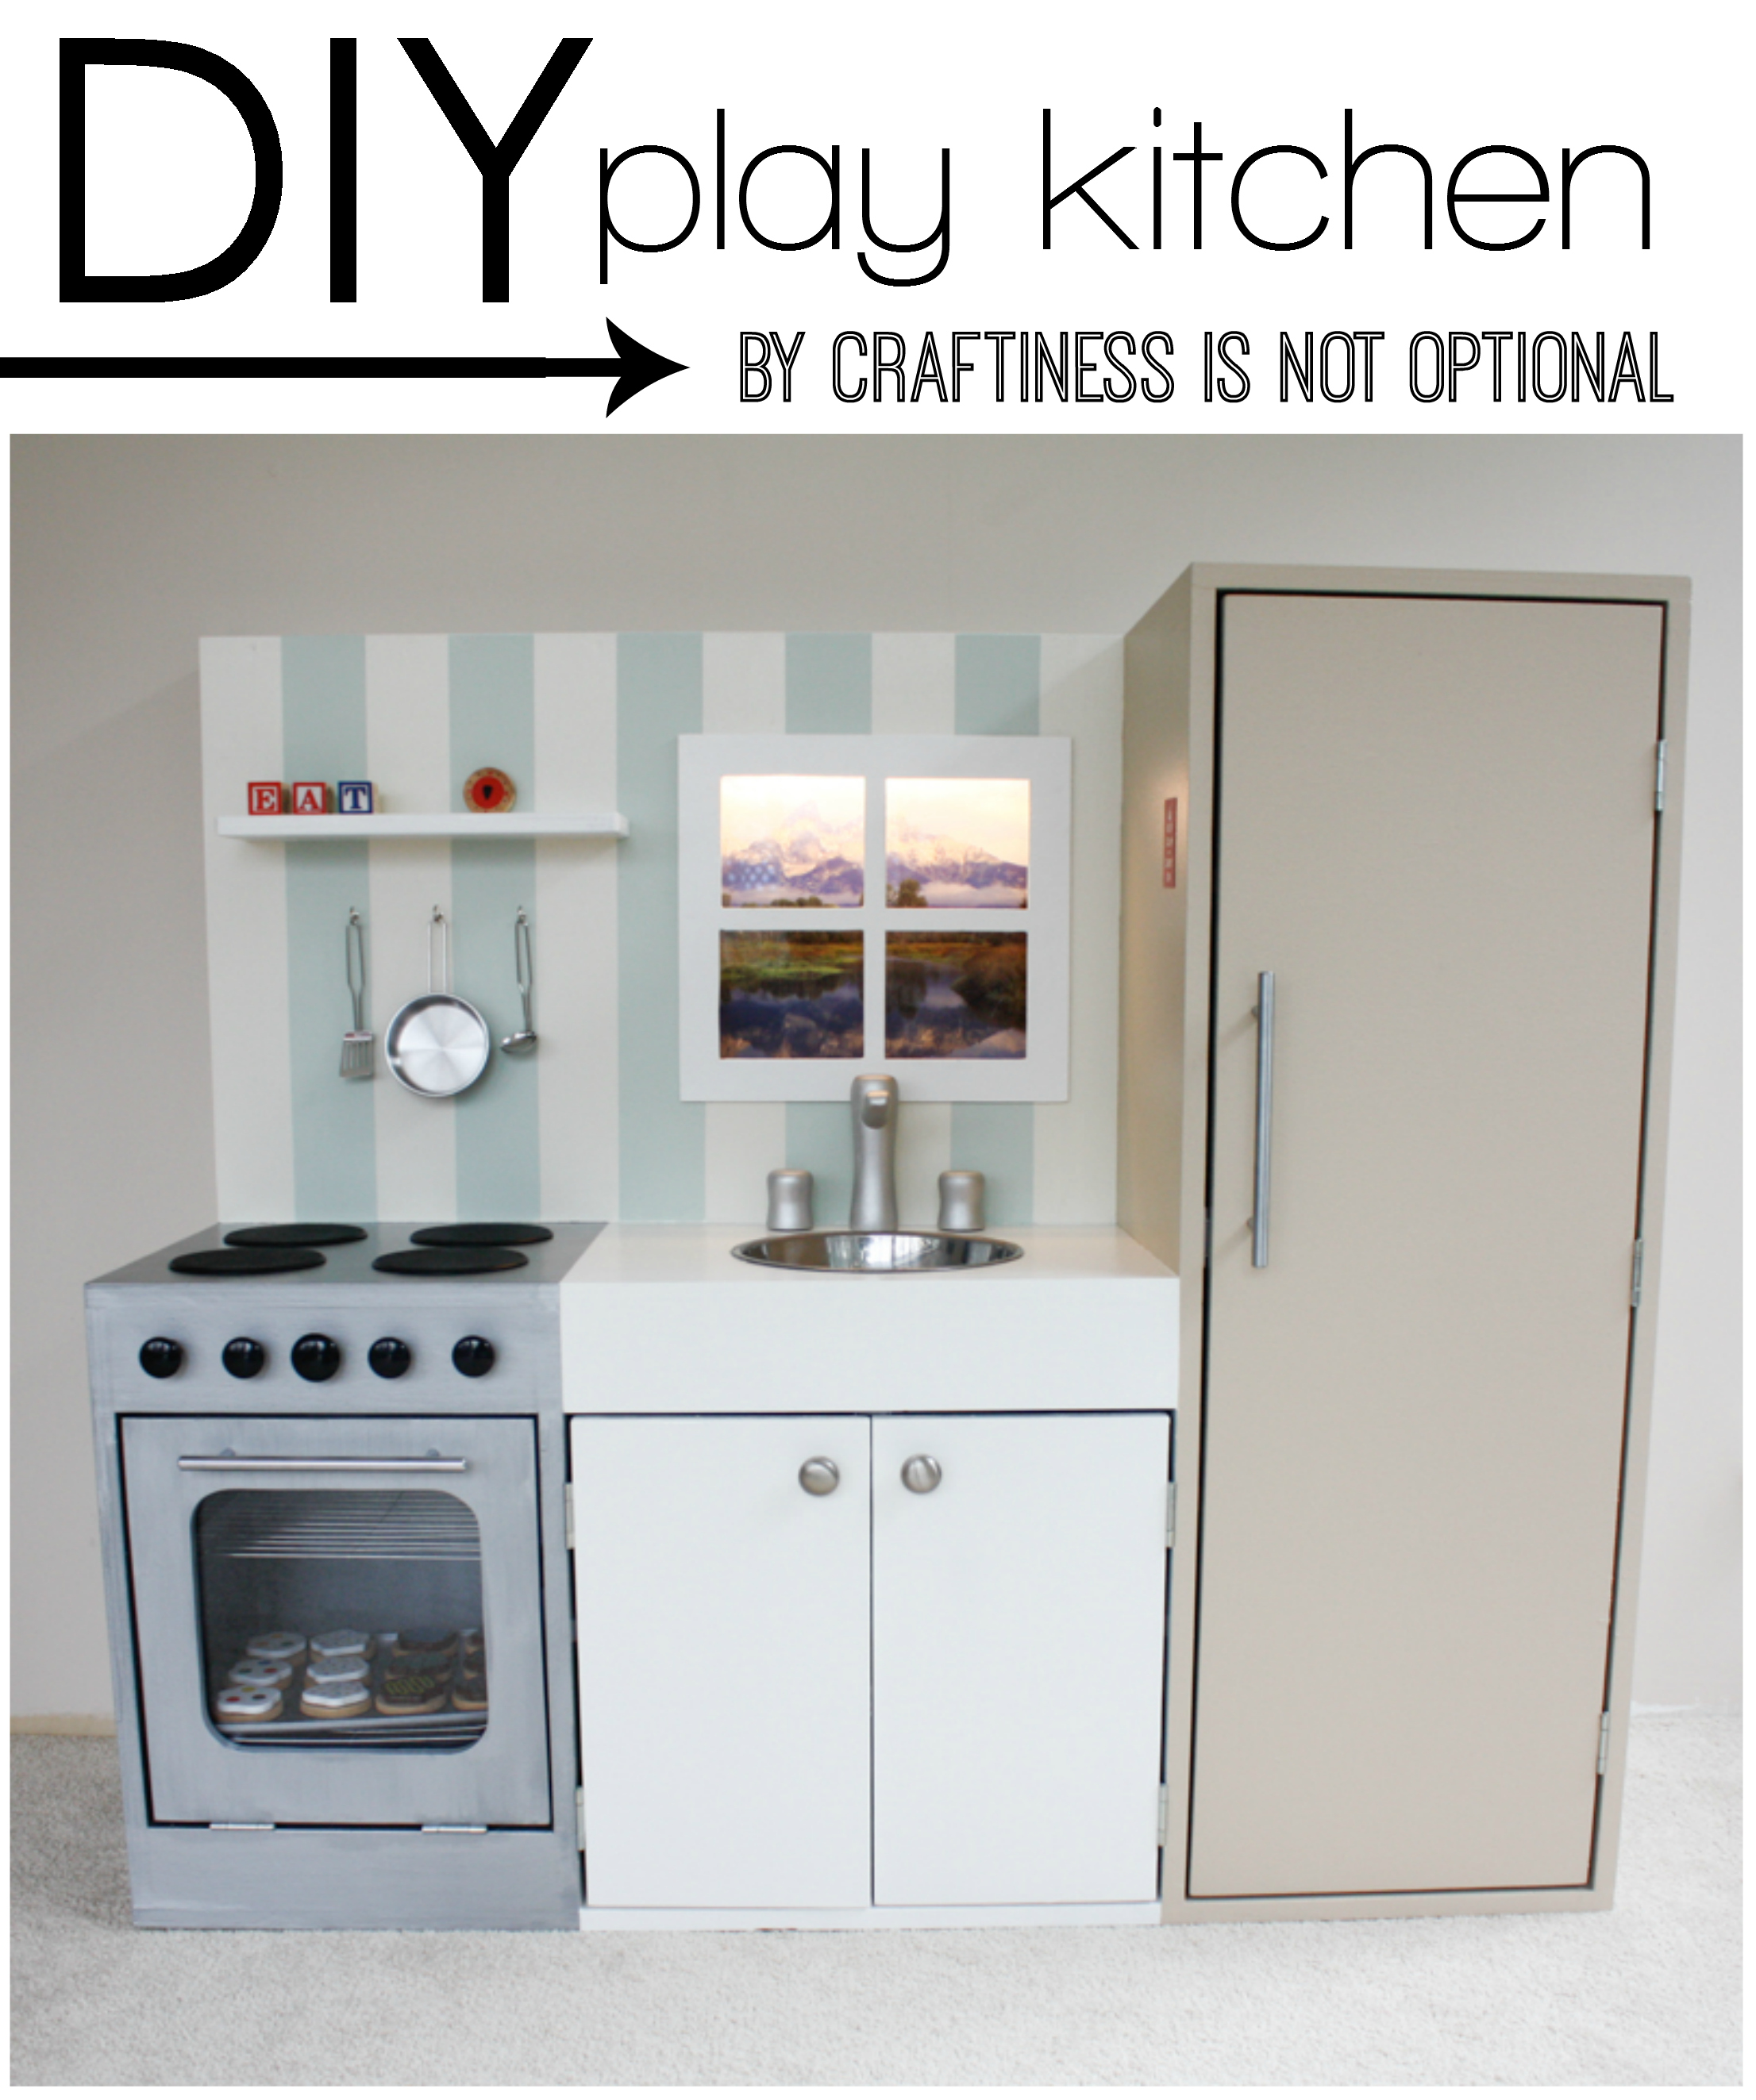 diy play kitchen